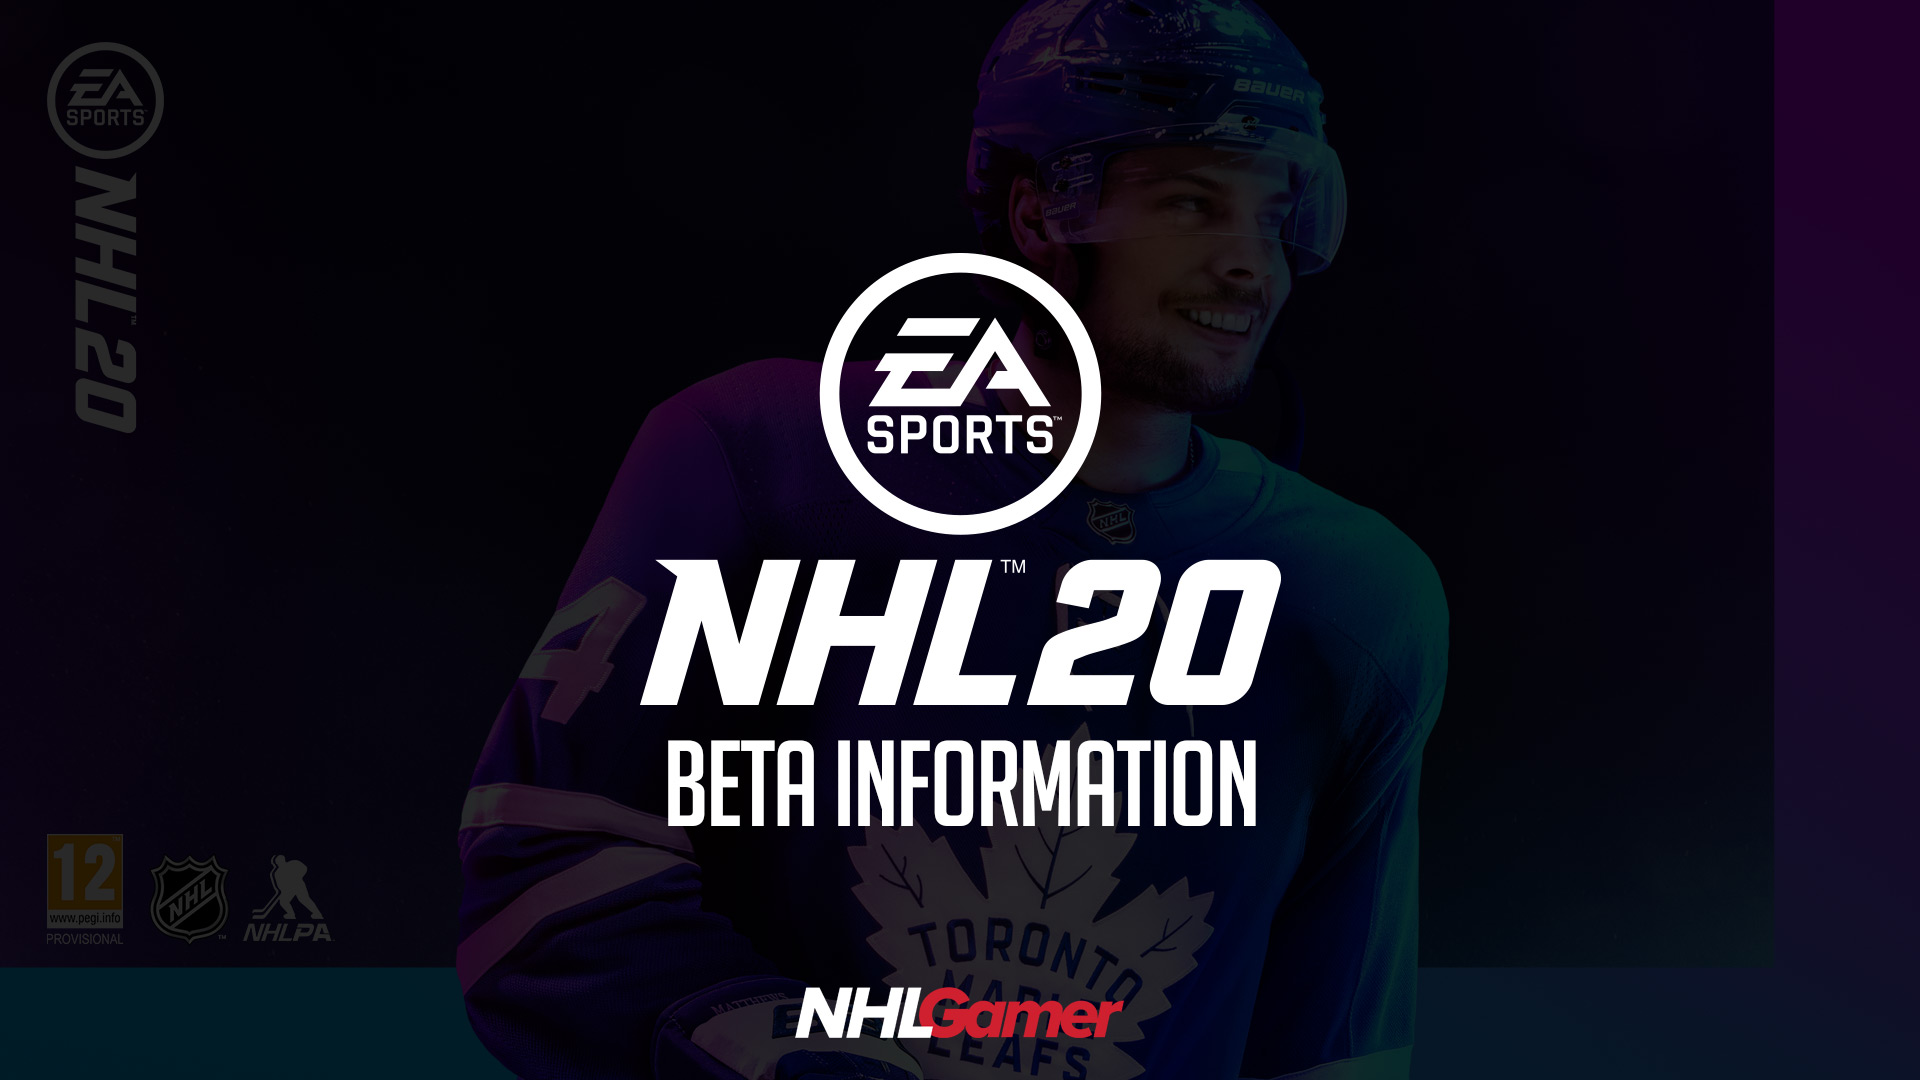 NHL_20_Beta_Information.jpg